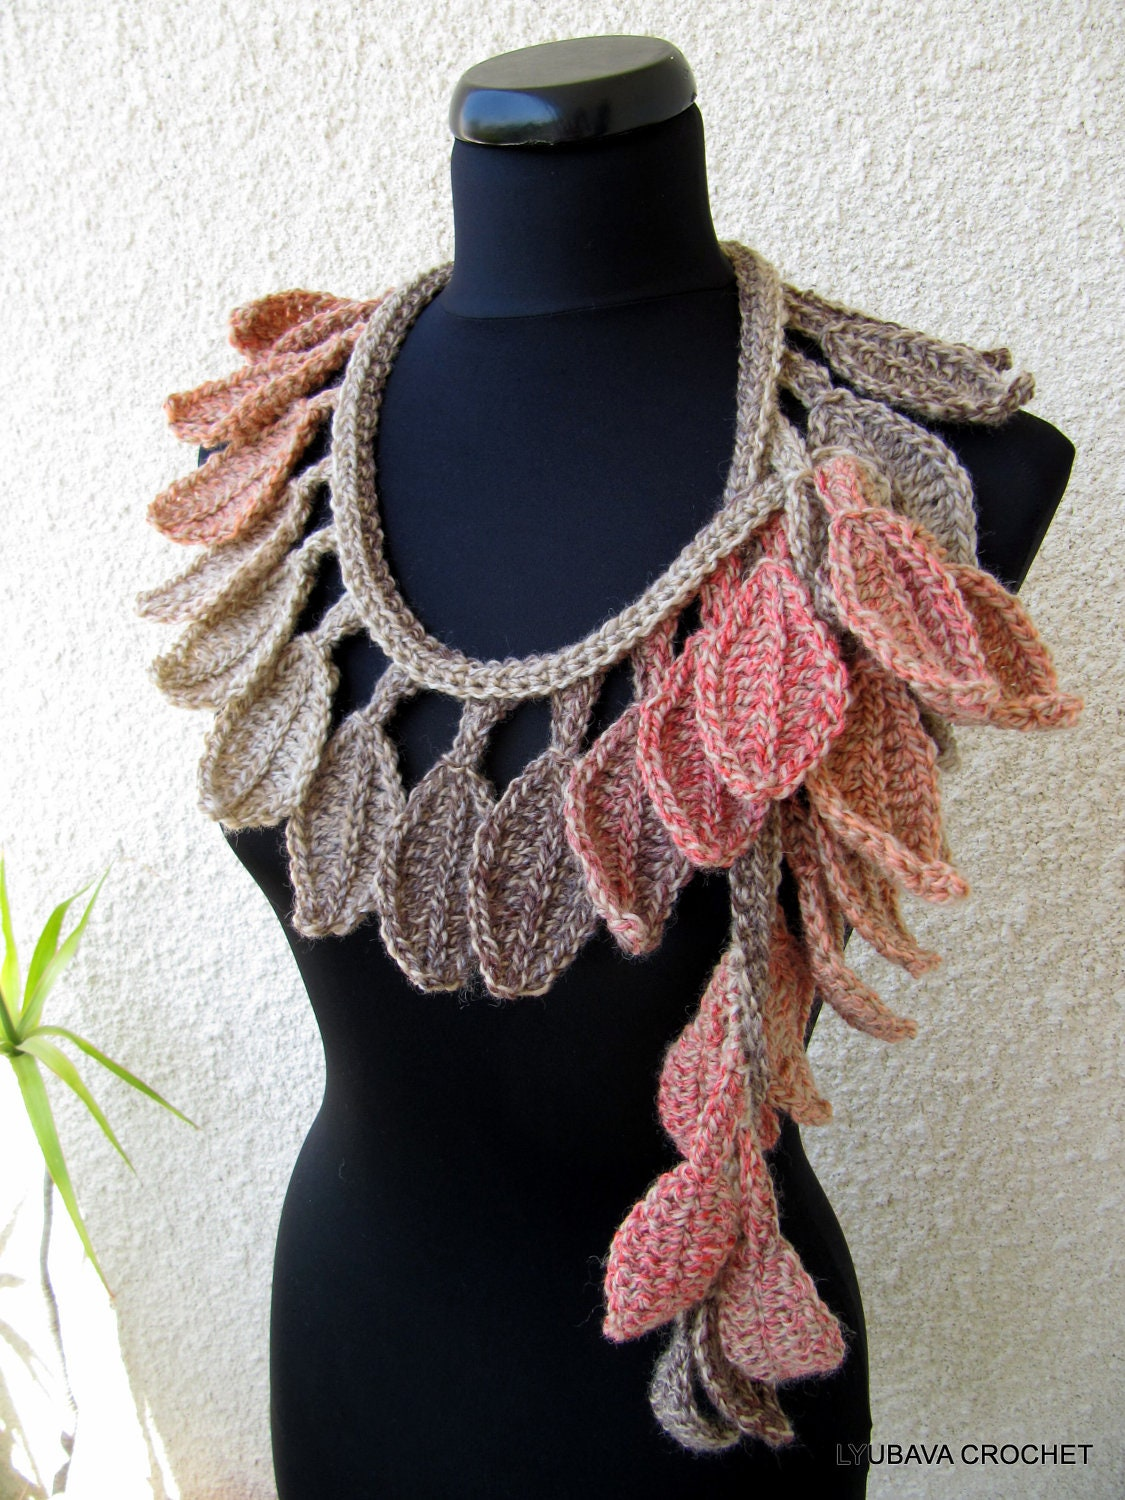 Fall Crochet Patterns : CROCHET SCARF PATTERN Autumn Leaves Fall Crochet by LyubavaCrochet